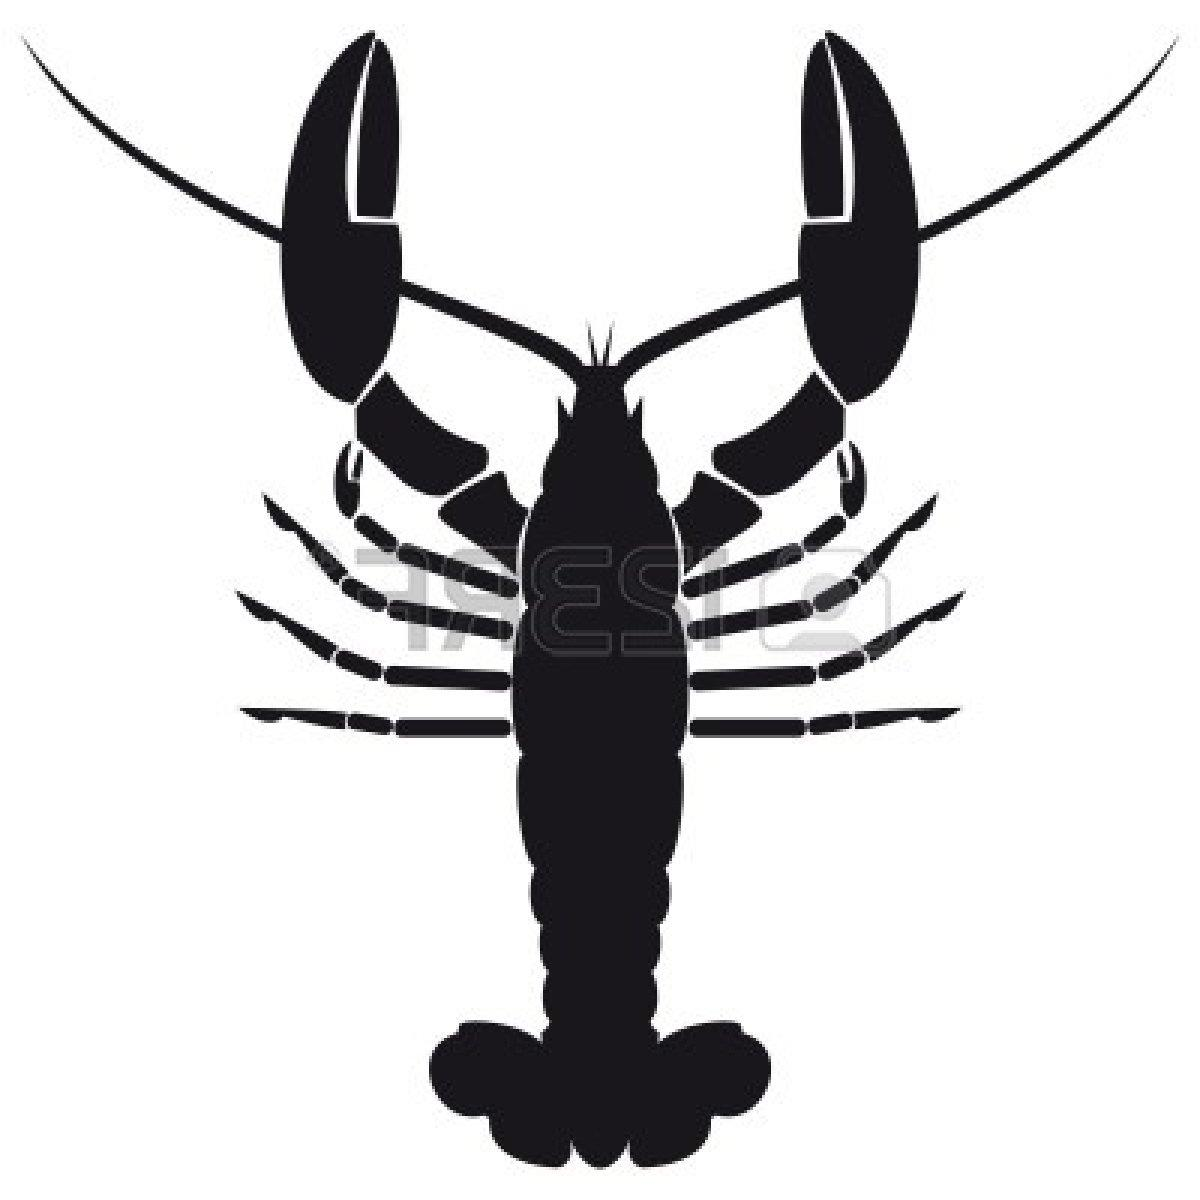 1200x1200 Unique Lobster Silhouette Cdr